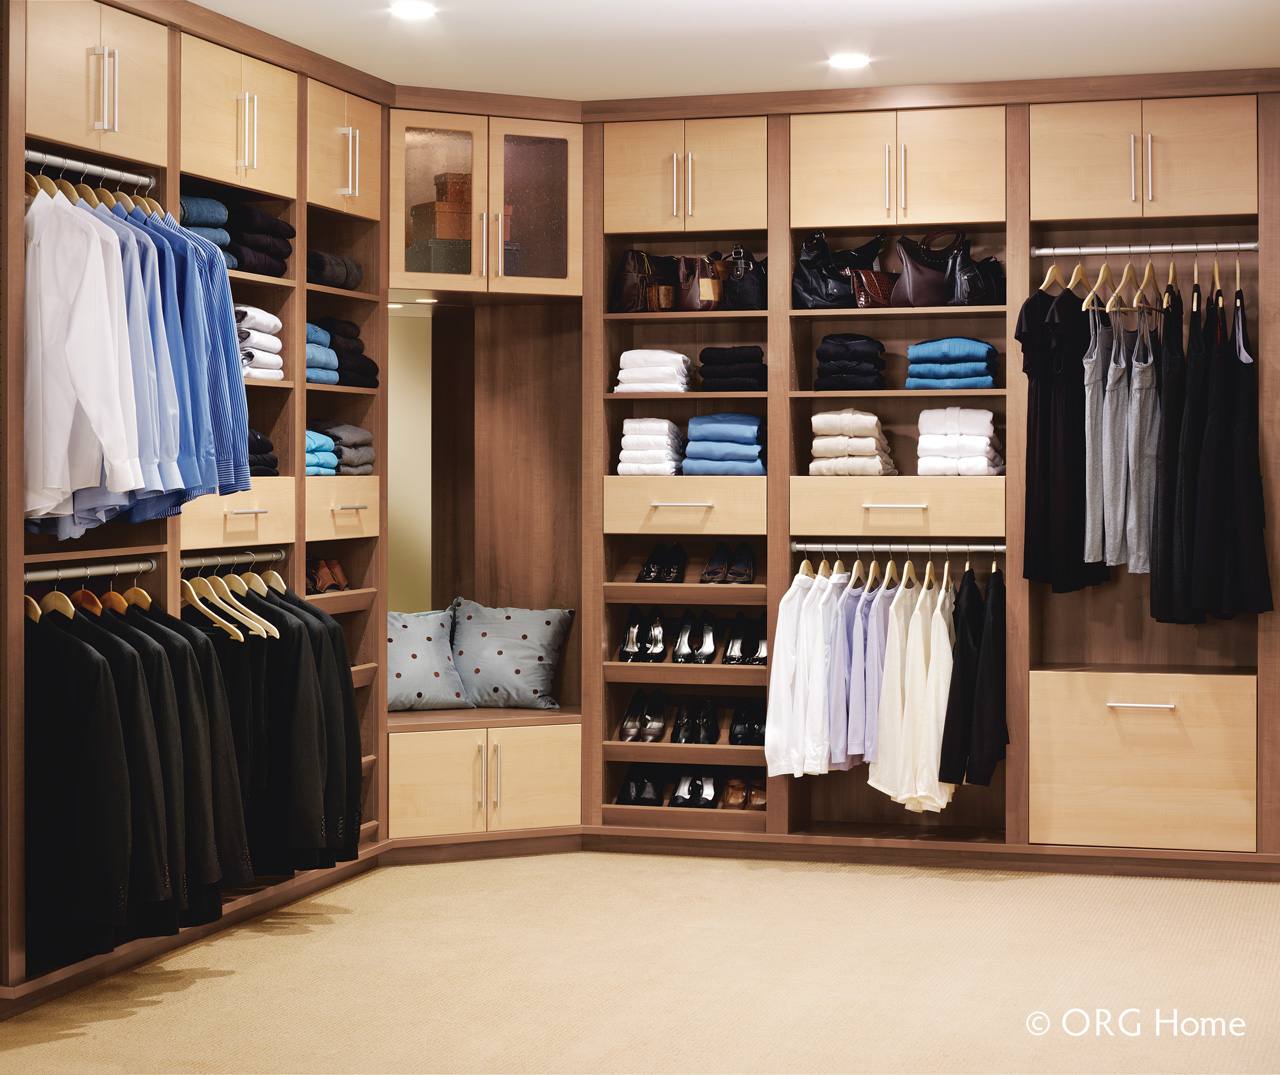 Coast Closets, Custom Closet Design Solutions for home and office.